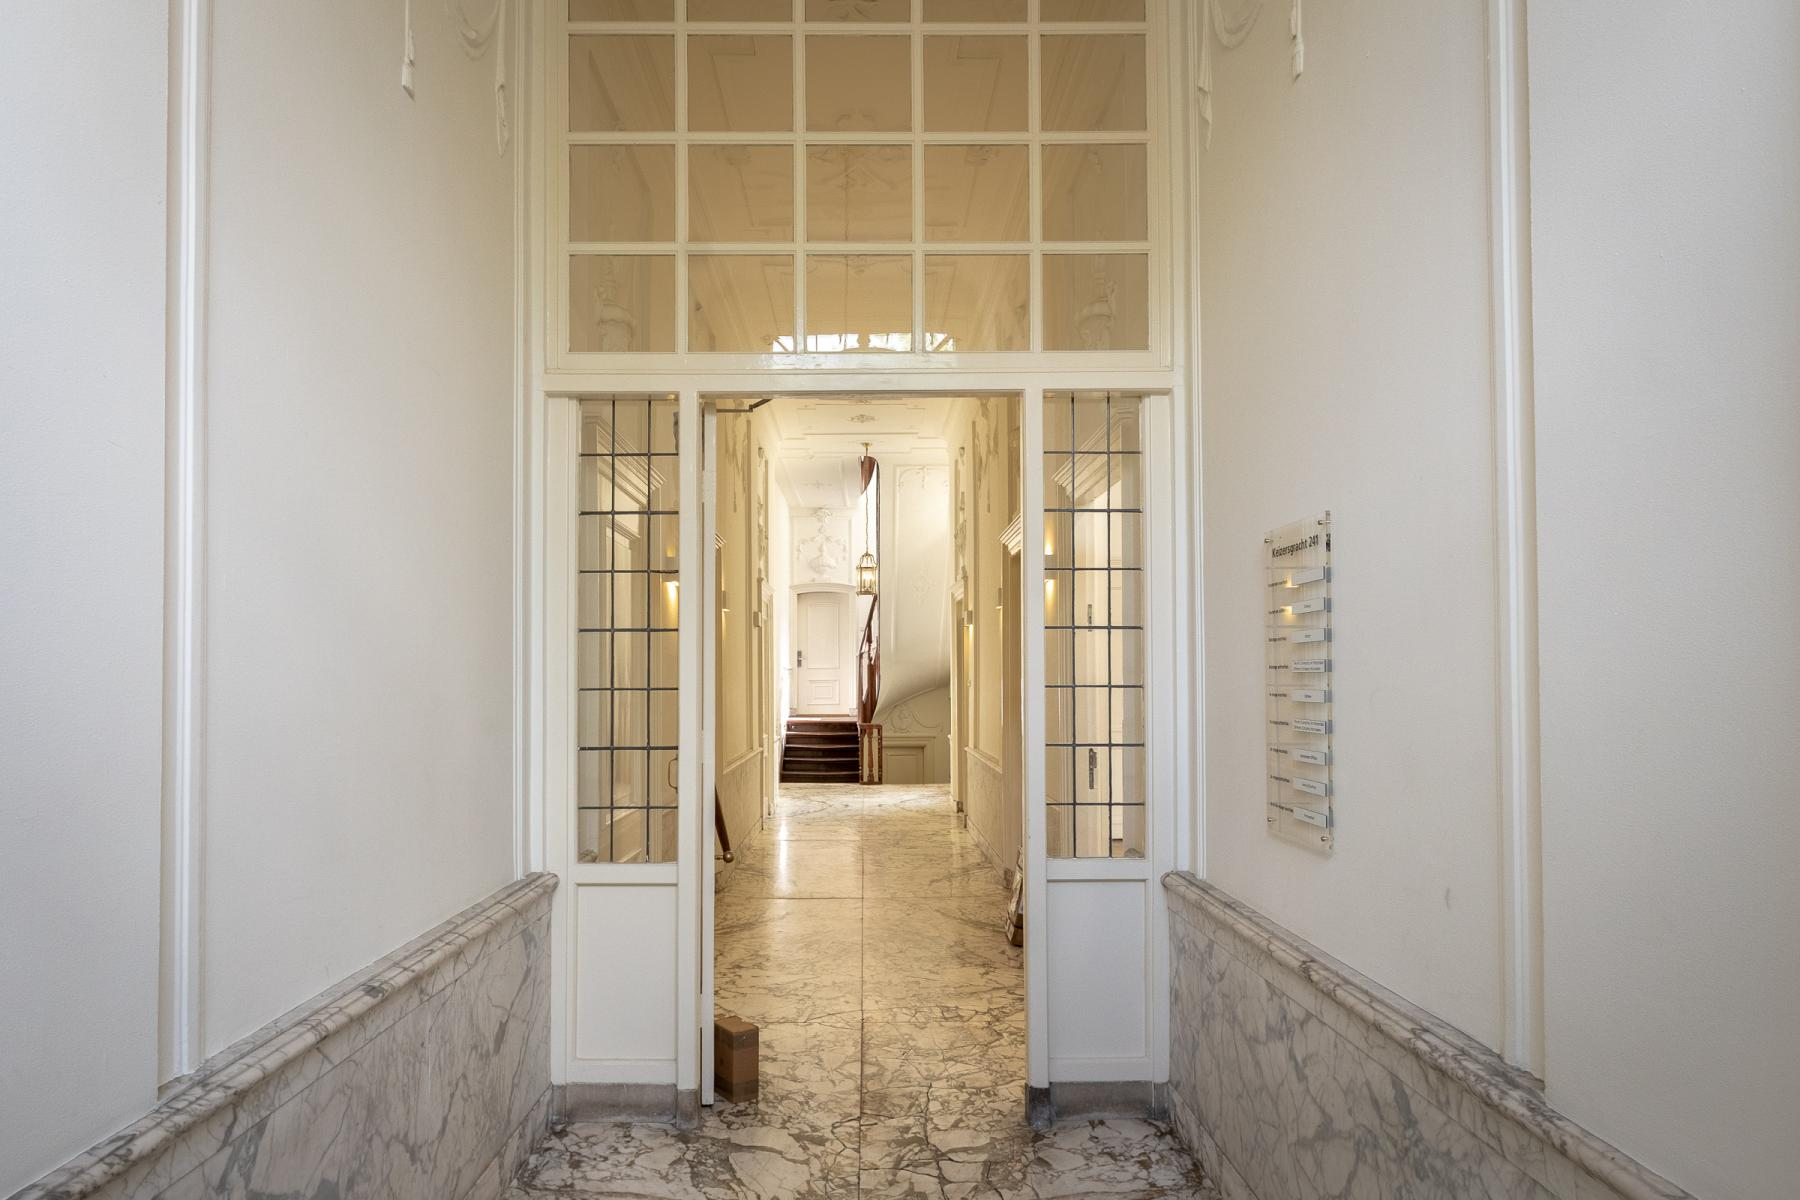 Rent office space Keizersgracht 241-2, Amsterdam (42)